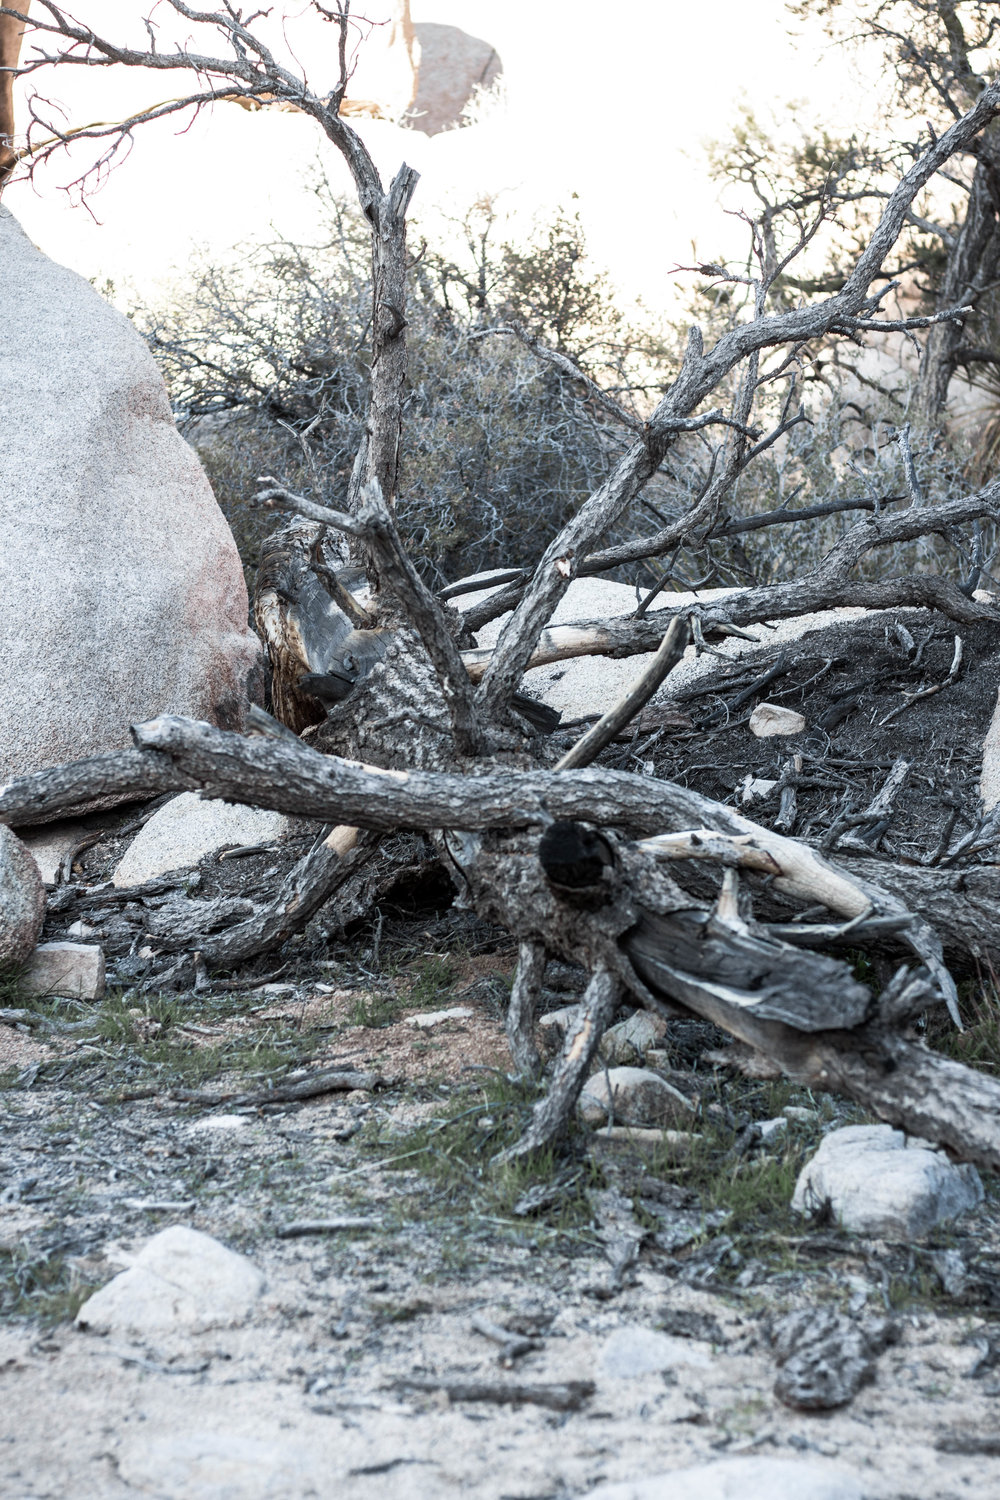 unsettle-co-lifestyle-blog-spaces-joshua-tree-national-park-trees